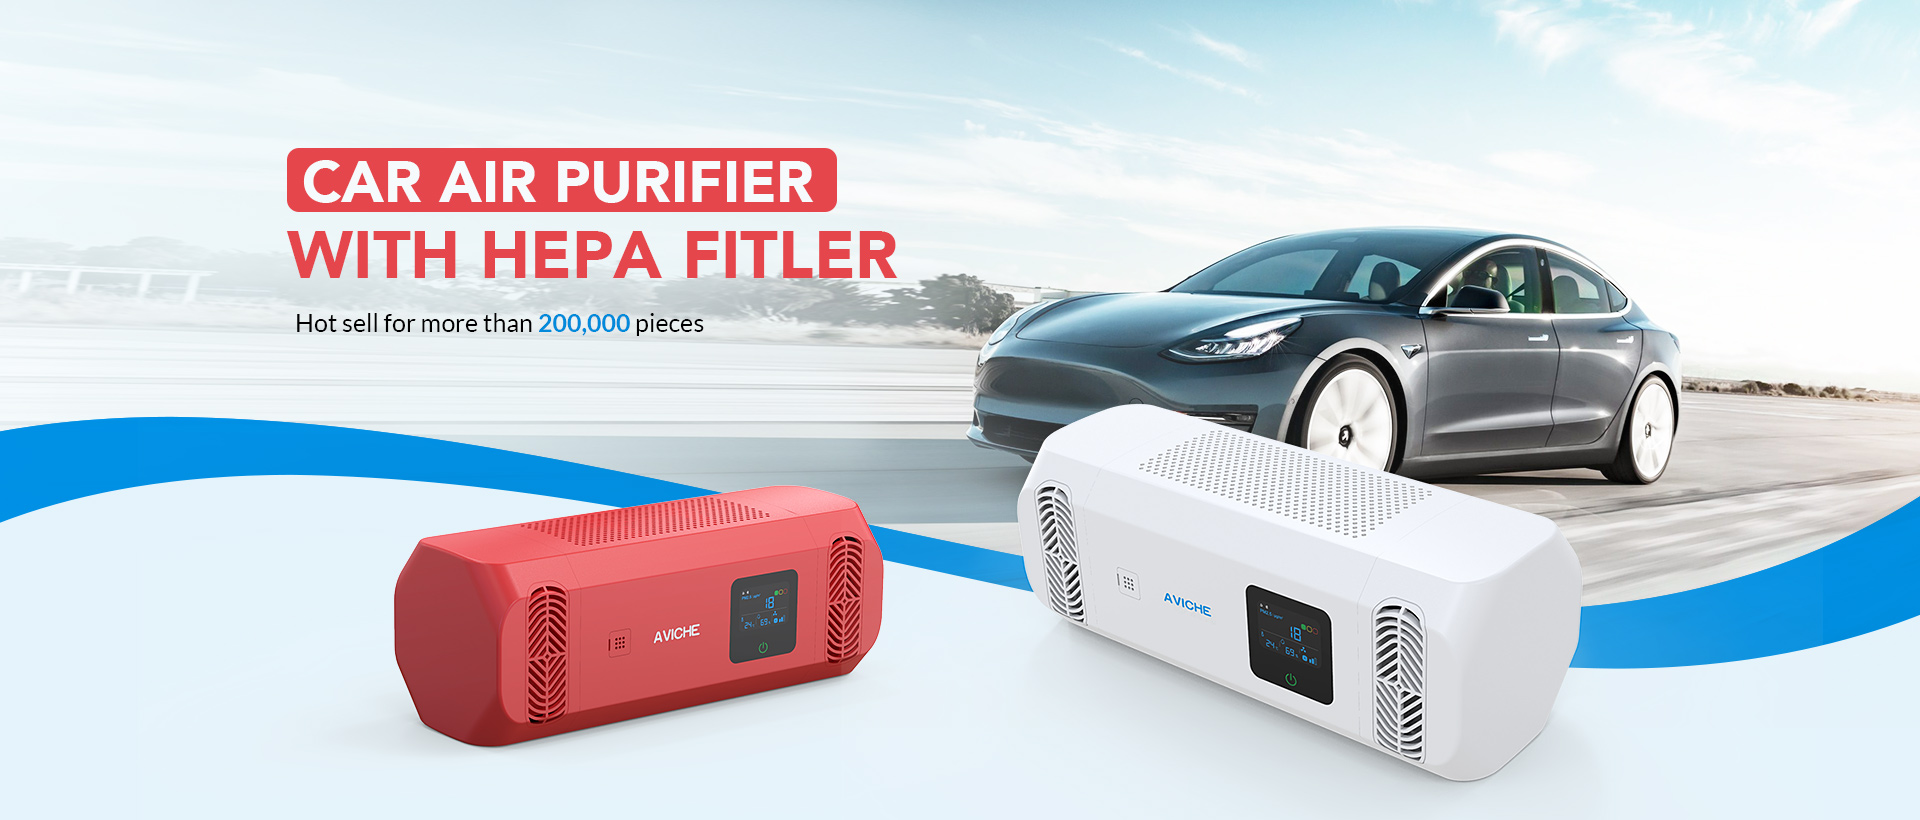 Korea Car Air Purifier With Hepa Filter Air Cleaner